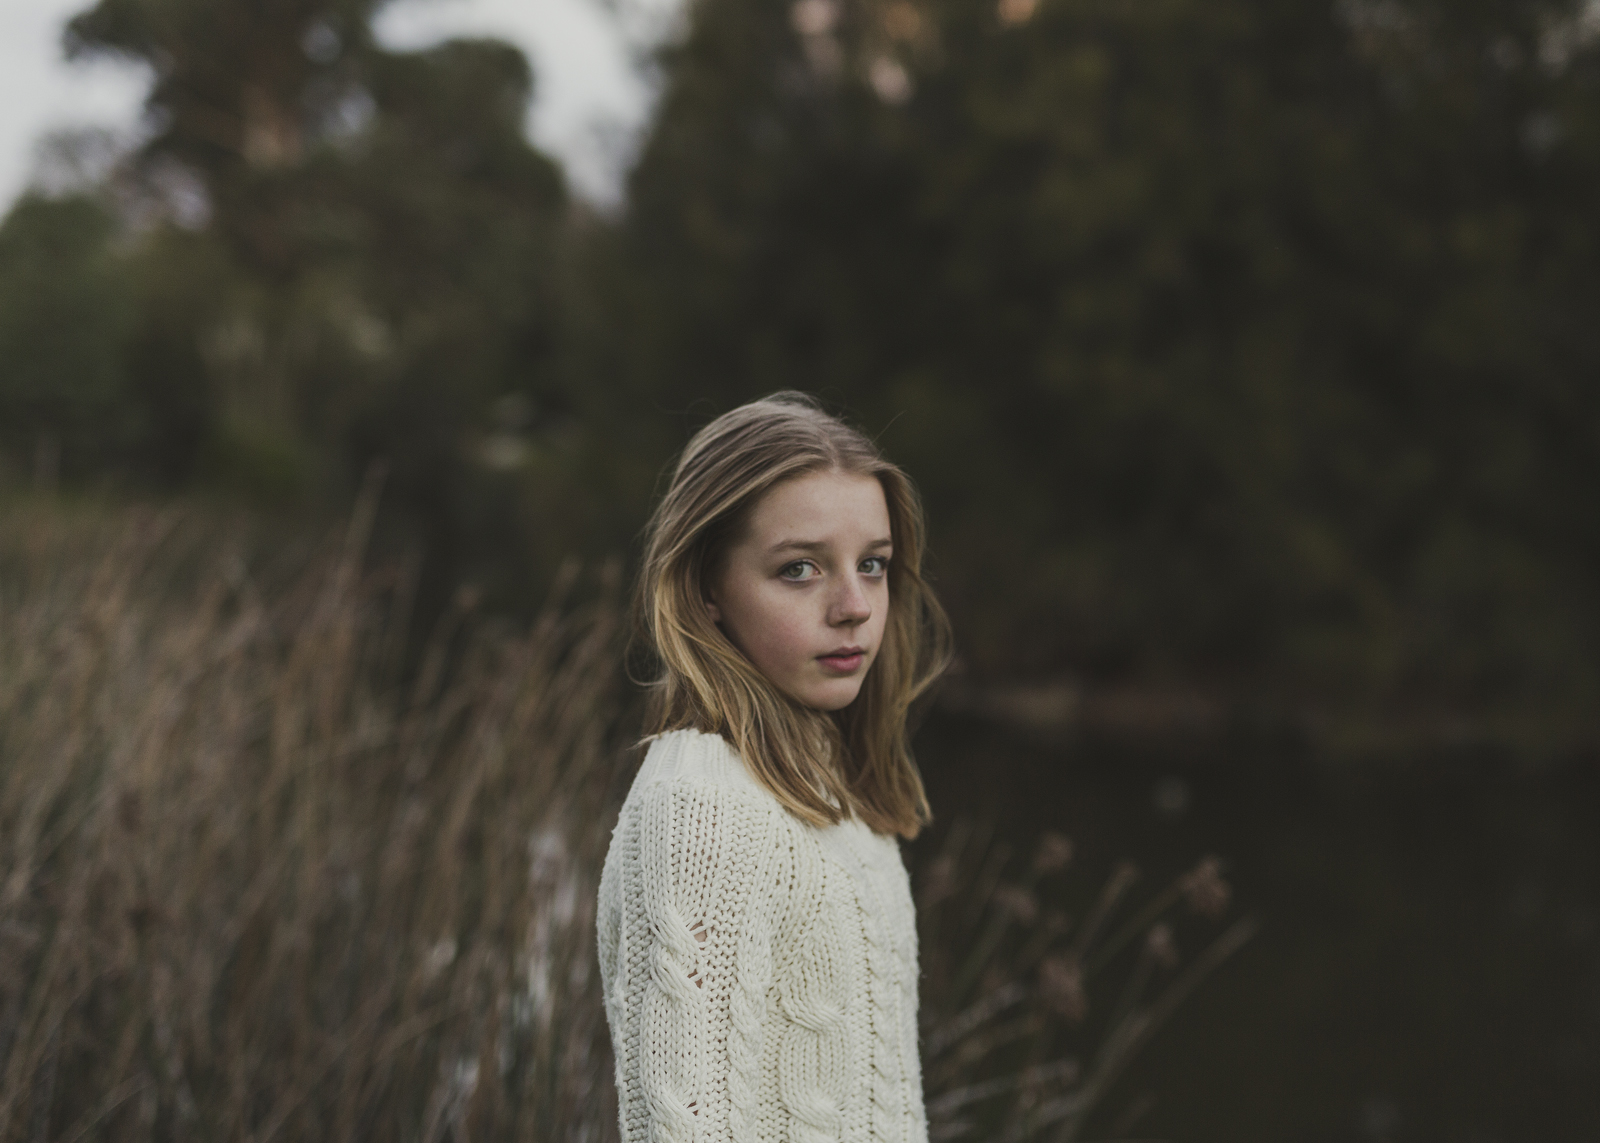 Natural Teen Photography Melbourne